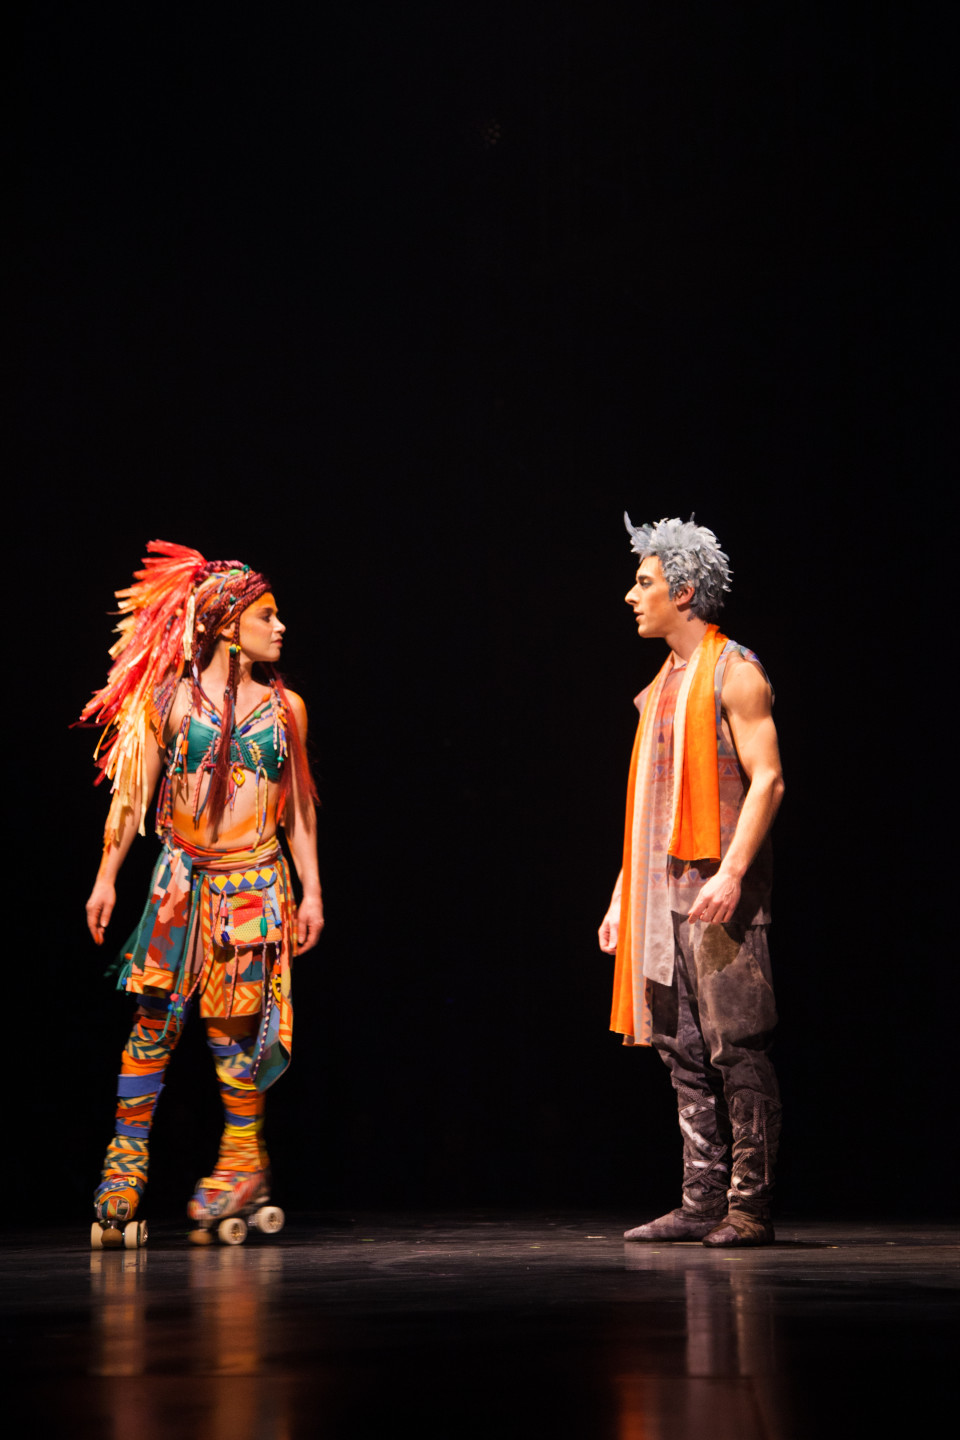 14-VOLTA_BREAKTHROUGH_004_Photo_credit_Patrice_Lamoureux_costumes_Zaldy-960x1440.jpg